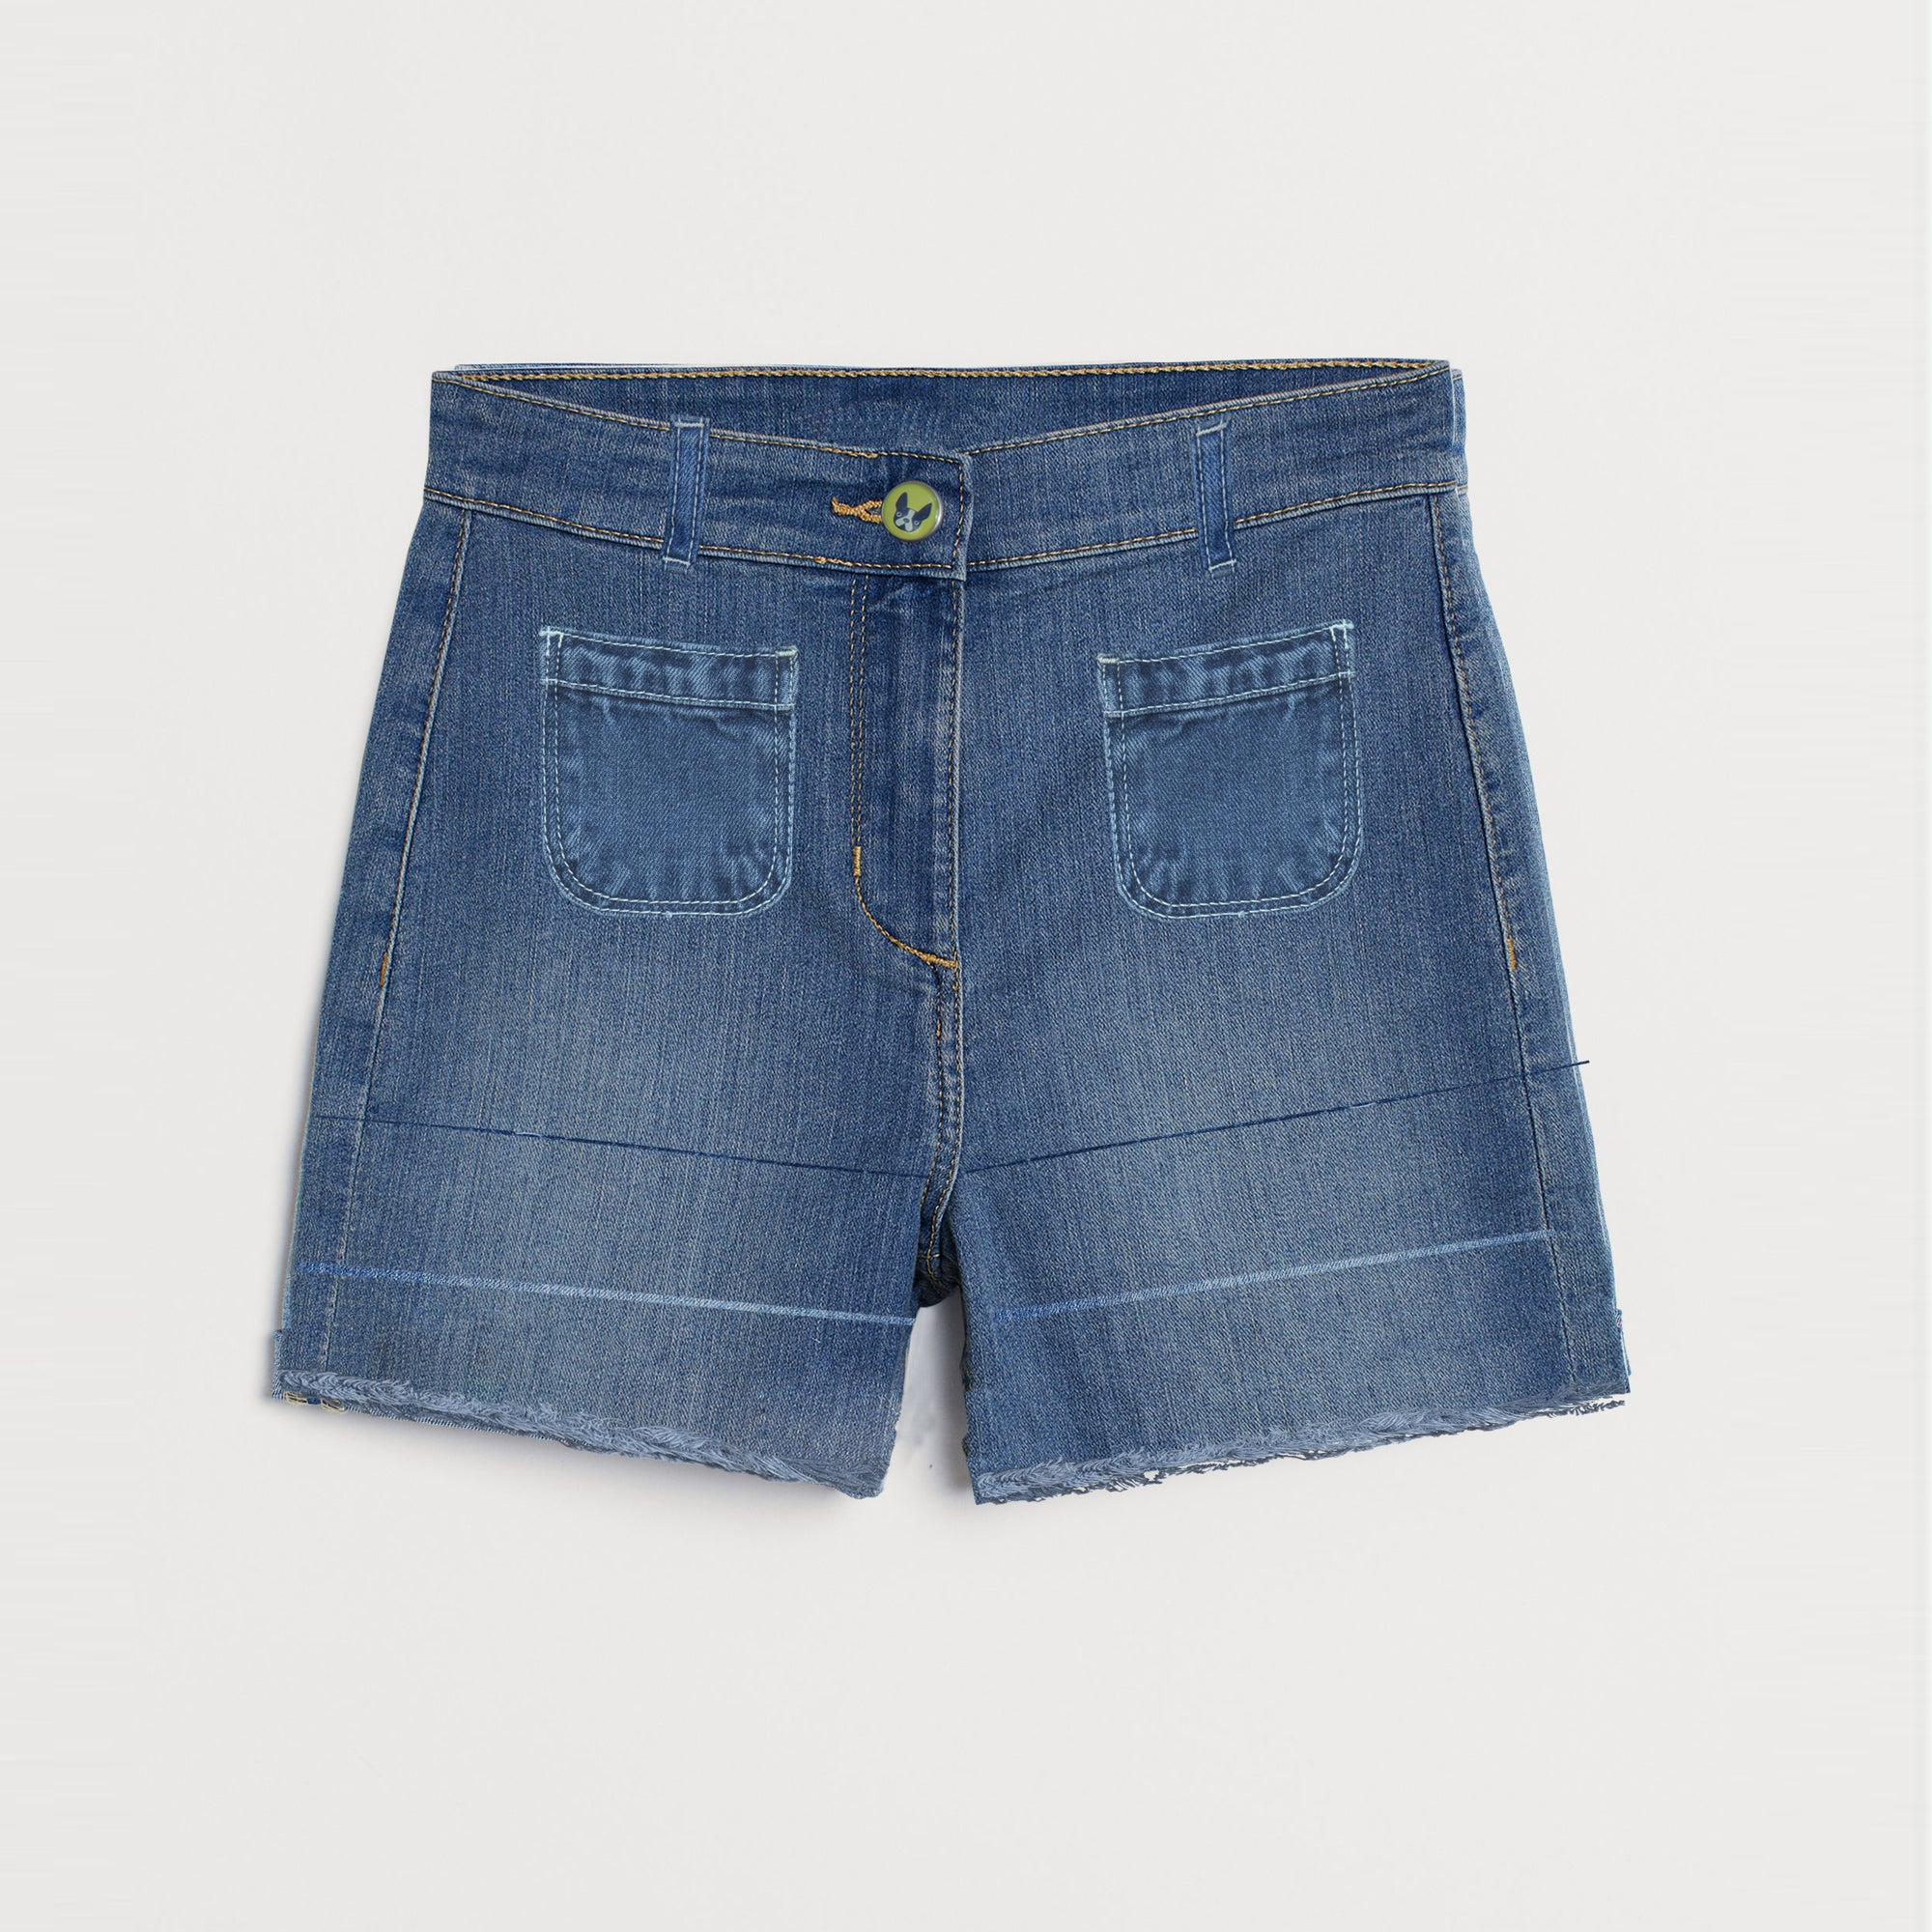 brandsego - Kite & Cosmic Denim Short For Ladies-Blue-SP504